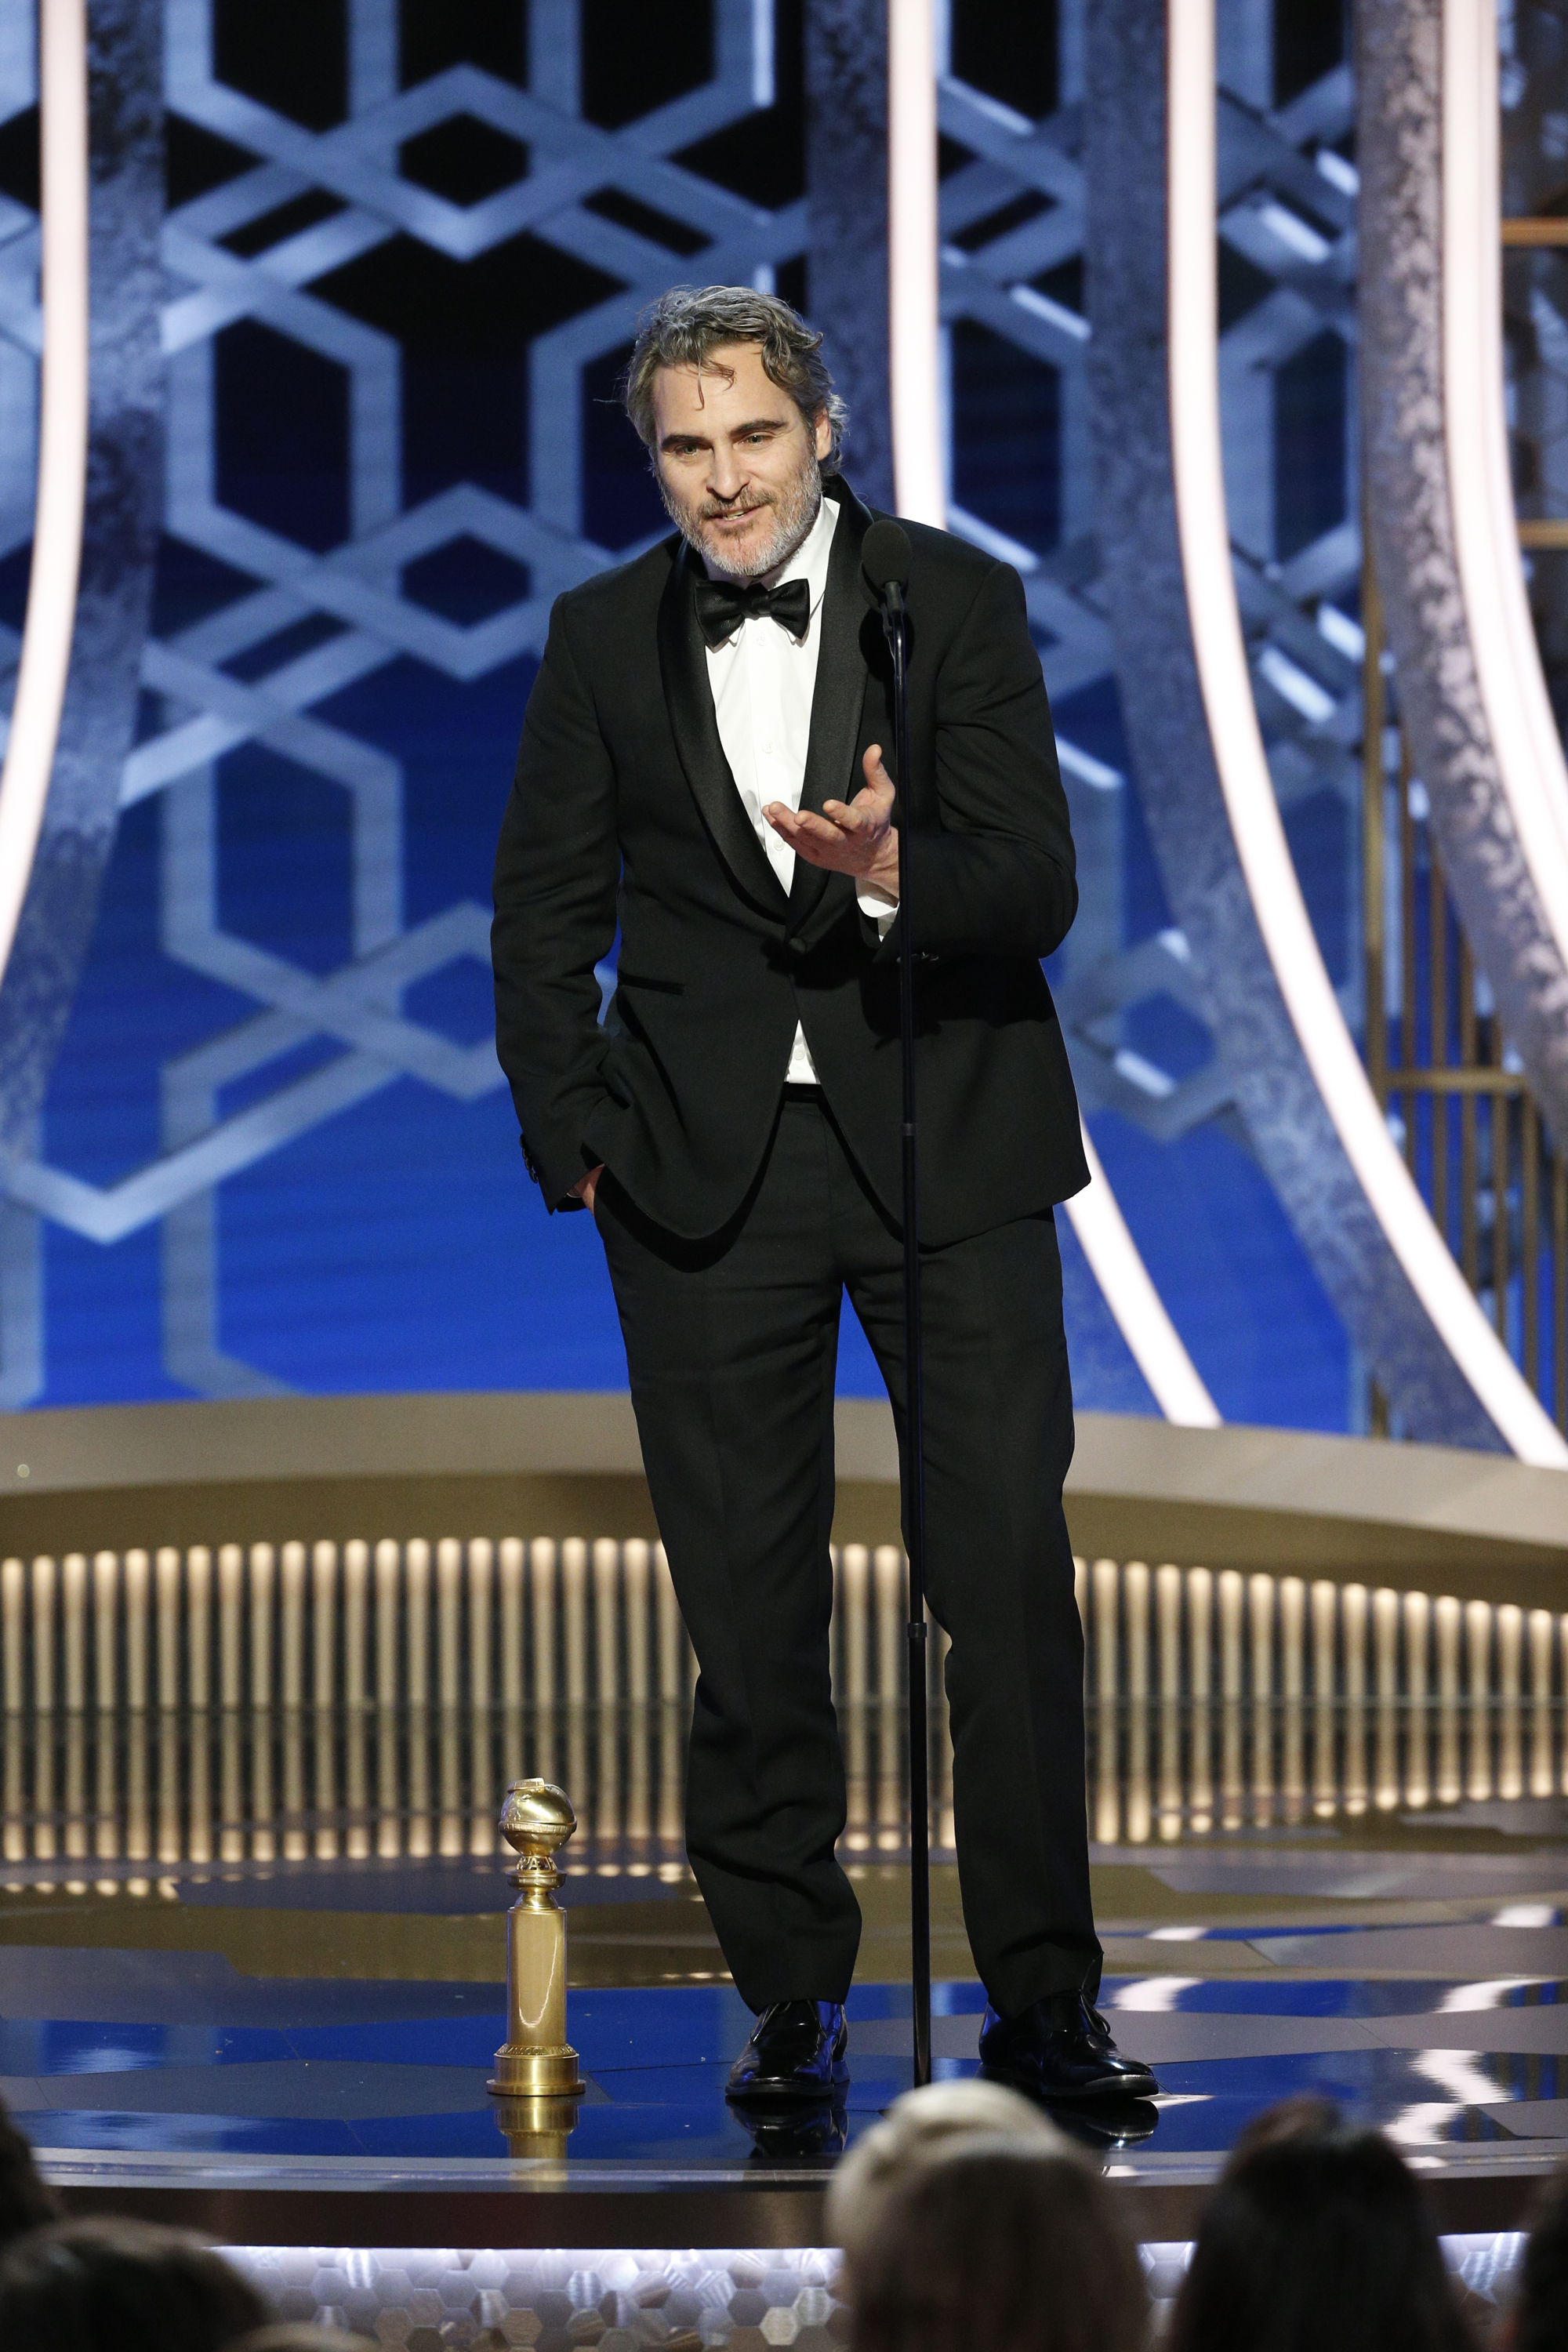 """BEVERLY HILLS, CALIFORNIA - JANUARY 05: In this handout photo provided by NBCUniversal Media, LLC,  Joaquin Phoenix accepts the award for BEST PERFORMANCE BY AN ACTOR IN A MOTION PICTURE - DRAMA for """"Joker"""" onstage during the 77th Annual Golden Globe Awards at The Beverly Hilton Hotel on January 5, 2020 in Beverly Hills, California. (Photo by Paul Drinkwater/NBCUniversal Media, LLC via Getty Images)"""